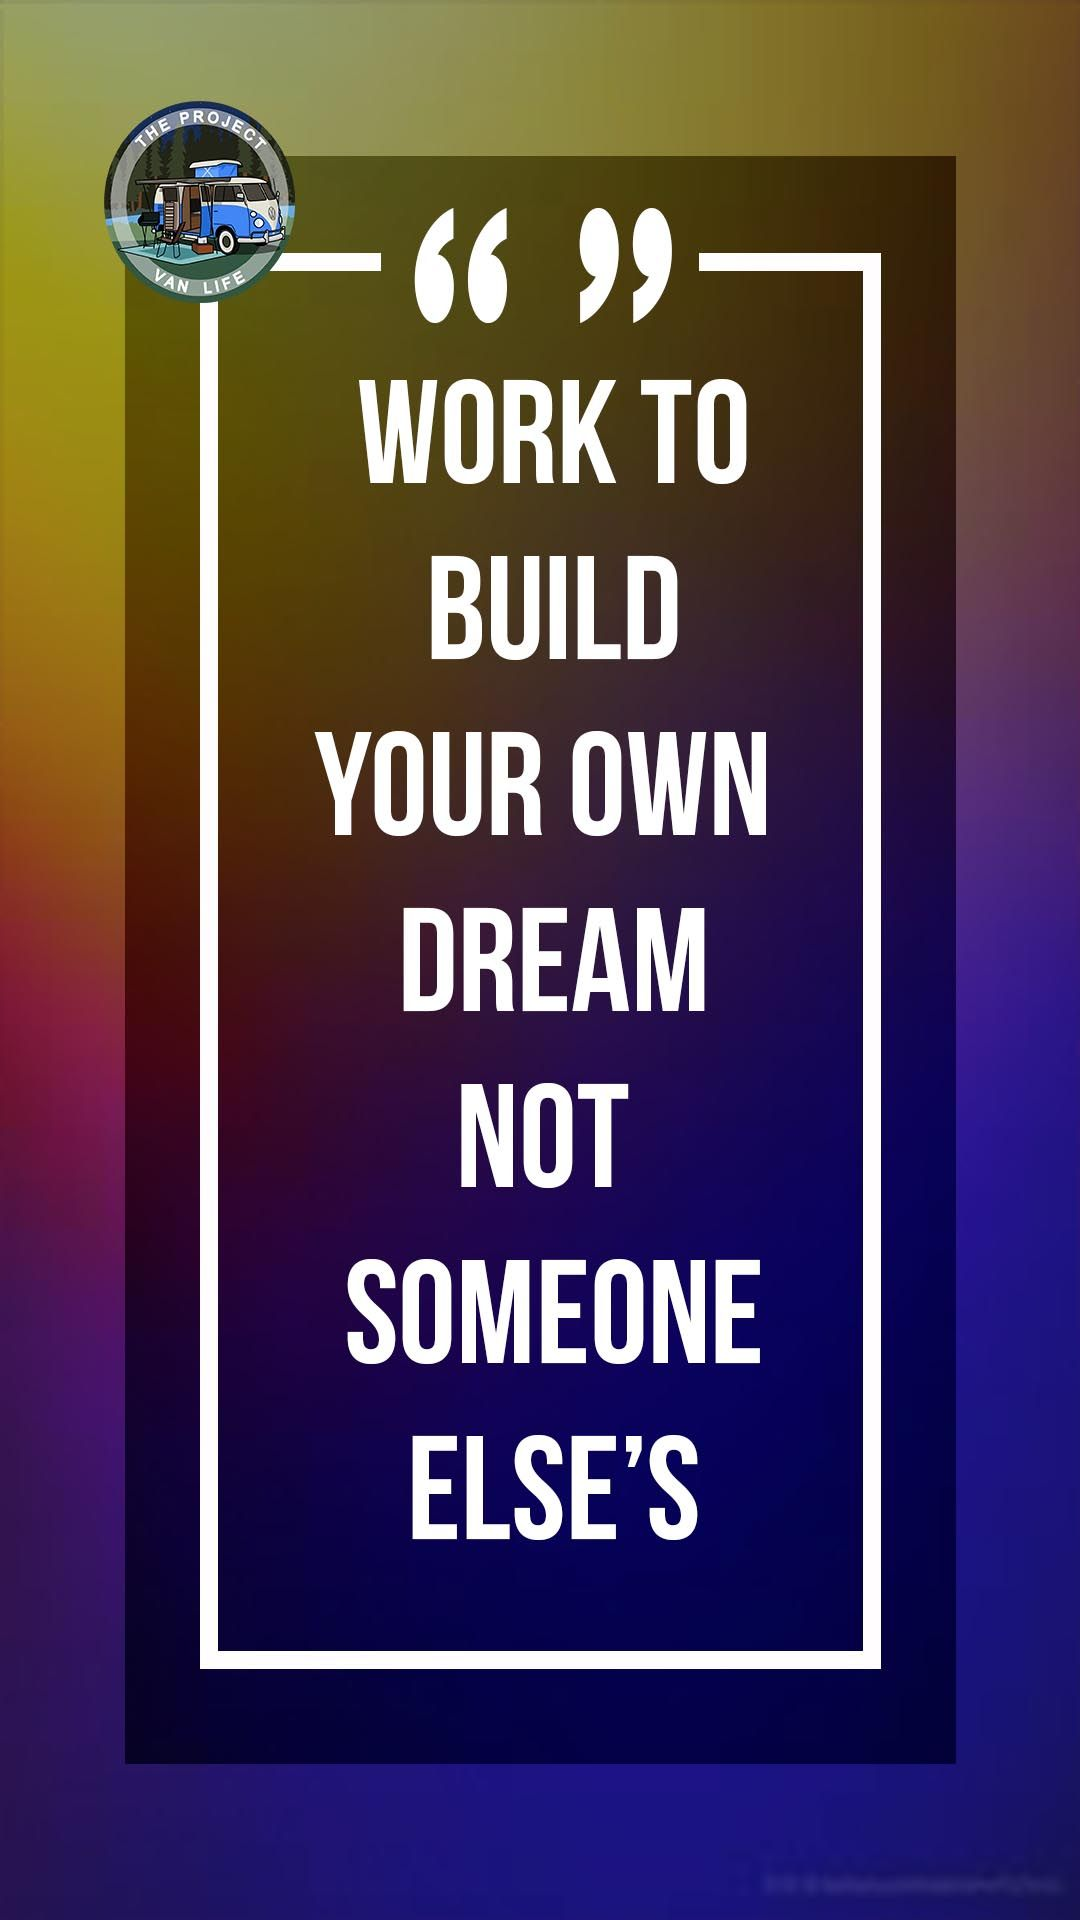 Work To Build Your Own Dream Inspirational Quotes Pictures Healing Quotes Van Life Blog